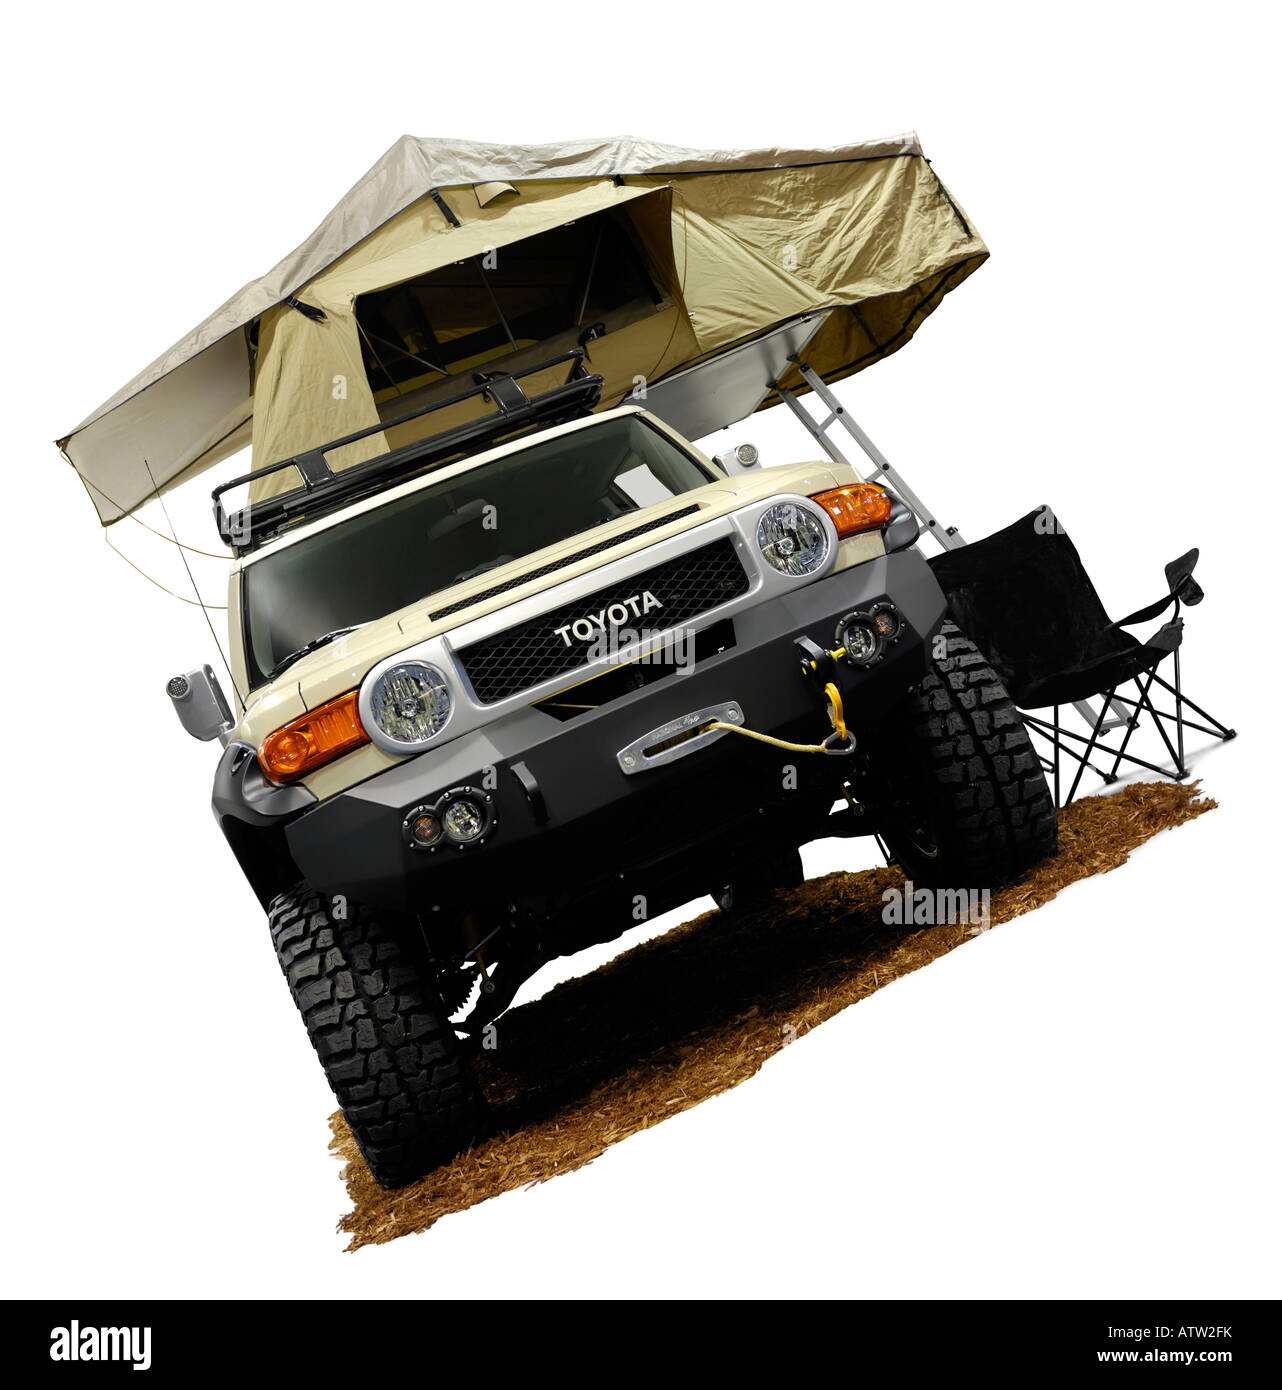 Toyota FJ Cruiser 2008 with a Tent  sc 1 st  Alamy & Toyota FJ Cruiser 2008 with a Tent Stock Photo Royalty Free Image ...